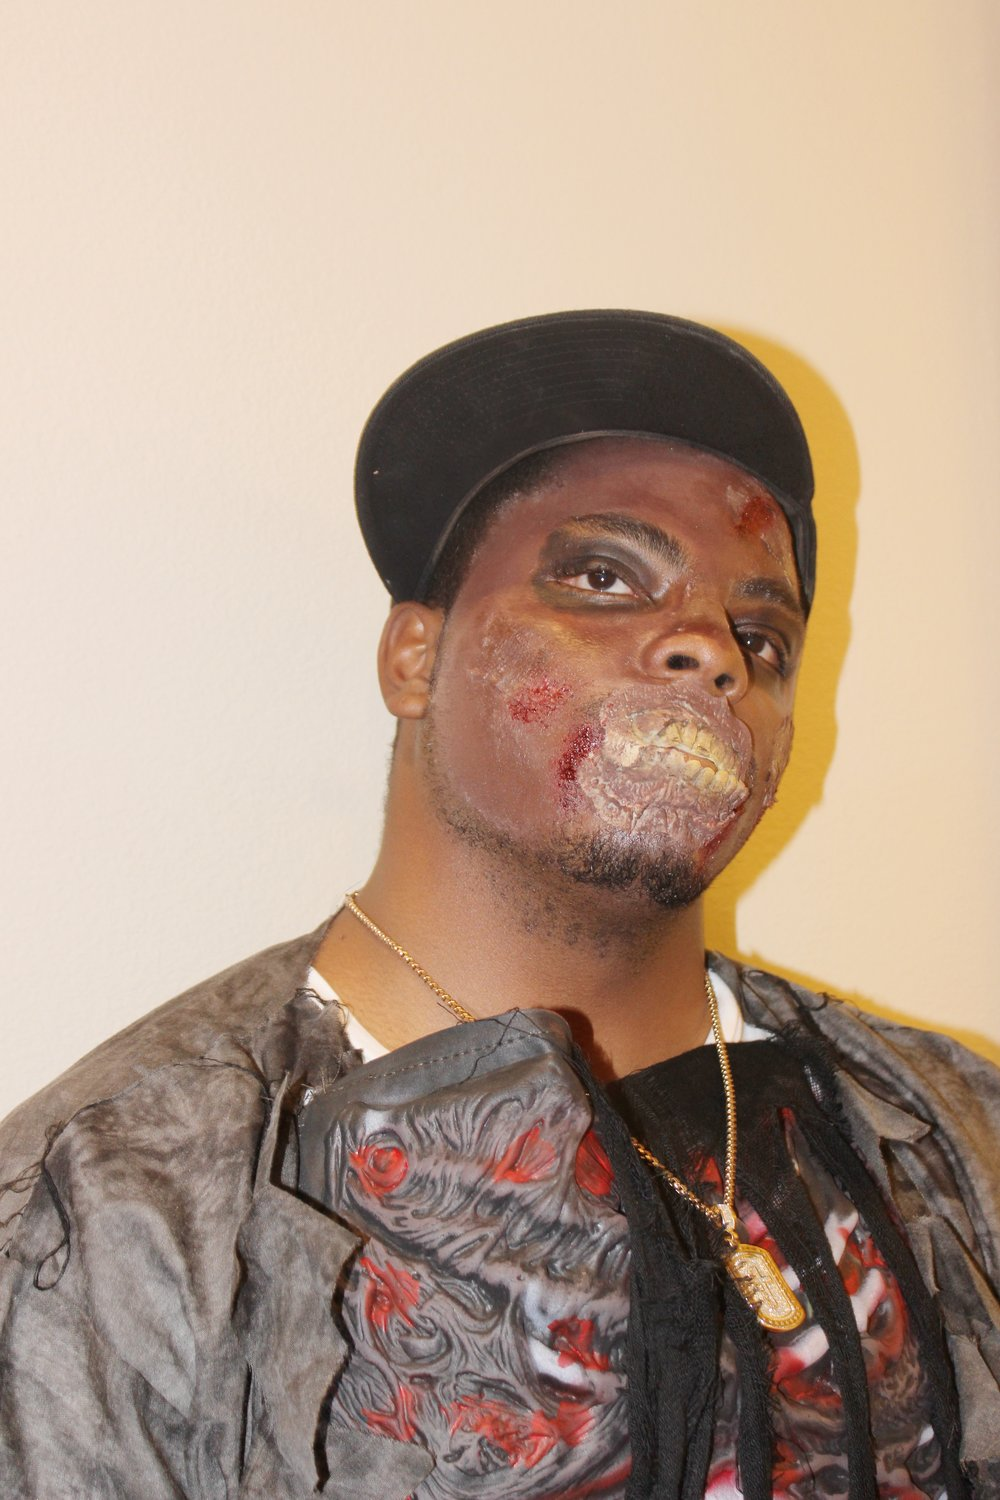 - My daughter did an amazing job on her dad's makeup for halloween